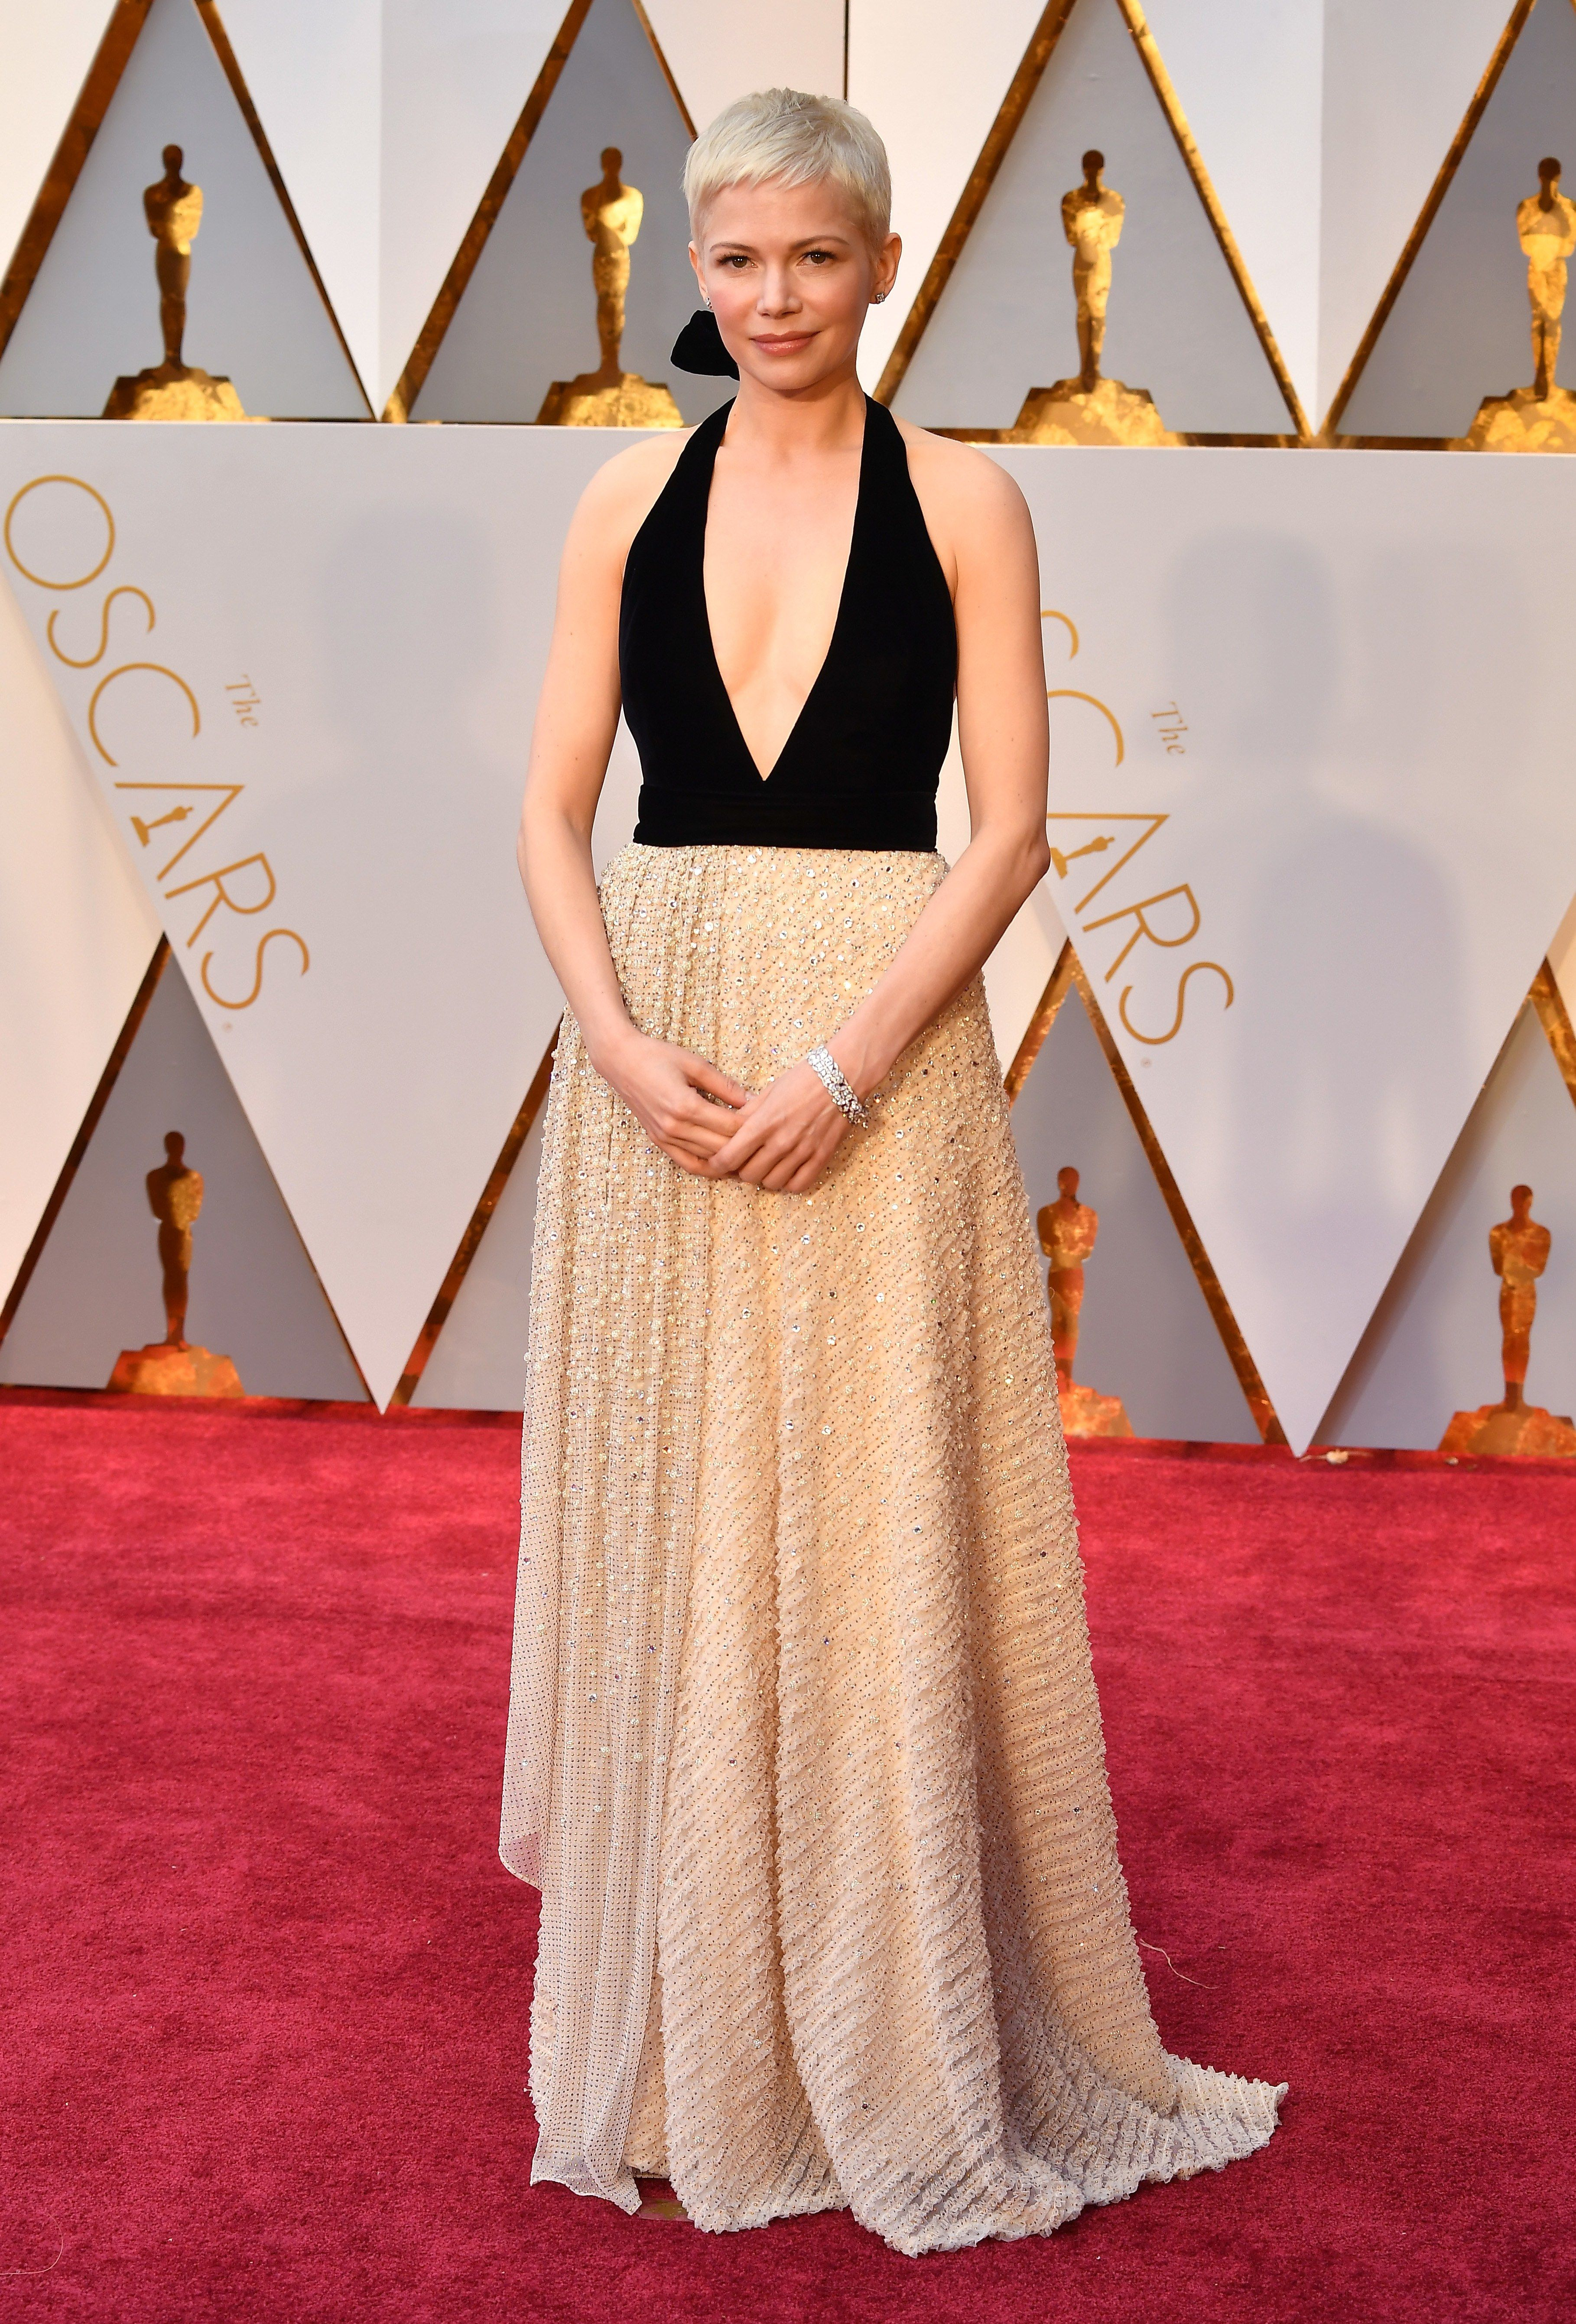 Oscars 2017 Fashion Live From The Red Carpet Nice Dresses Oscar Fashion Red Carpet Oscars